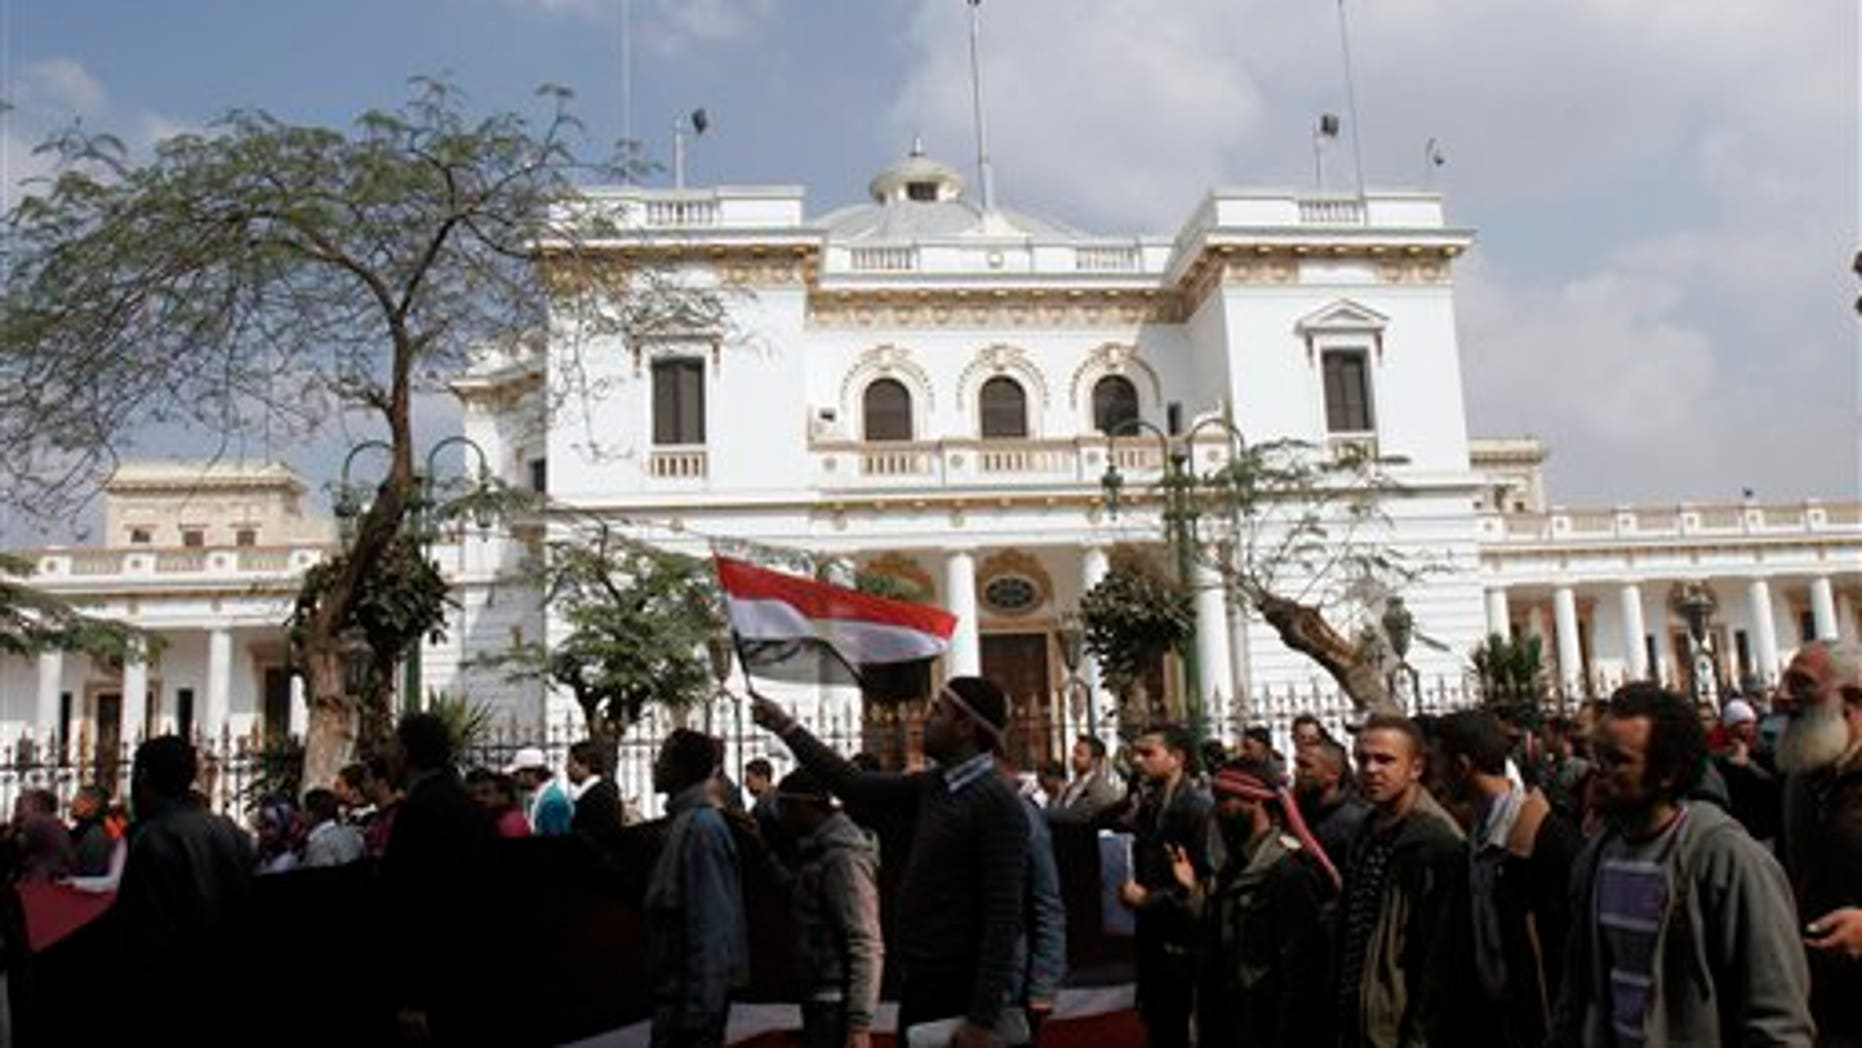 Feb. 9: Protesters wave Egyptian flags in front of the Egyptian Parliament in Cairo, Egypt. Around 2,000 protesters waved huge flags outside the parliament, located several blocks from Tahrir Square, where they moved a day earlier in the movement's first expansion out of the square. They chanted slogans demanding the dissolving of the legislature, where almost all the seats are held by the ruling party. (AP)